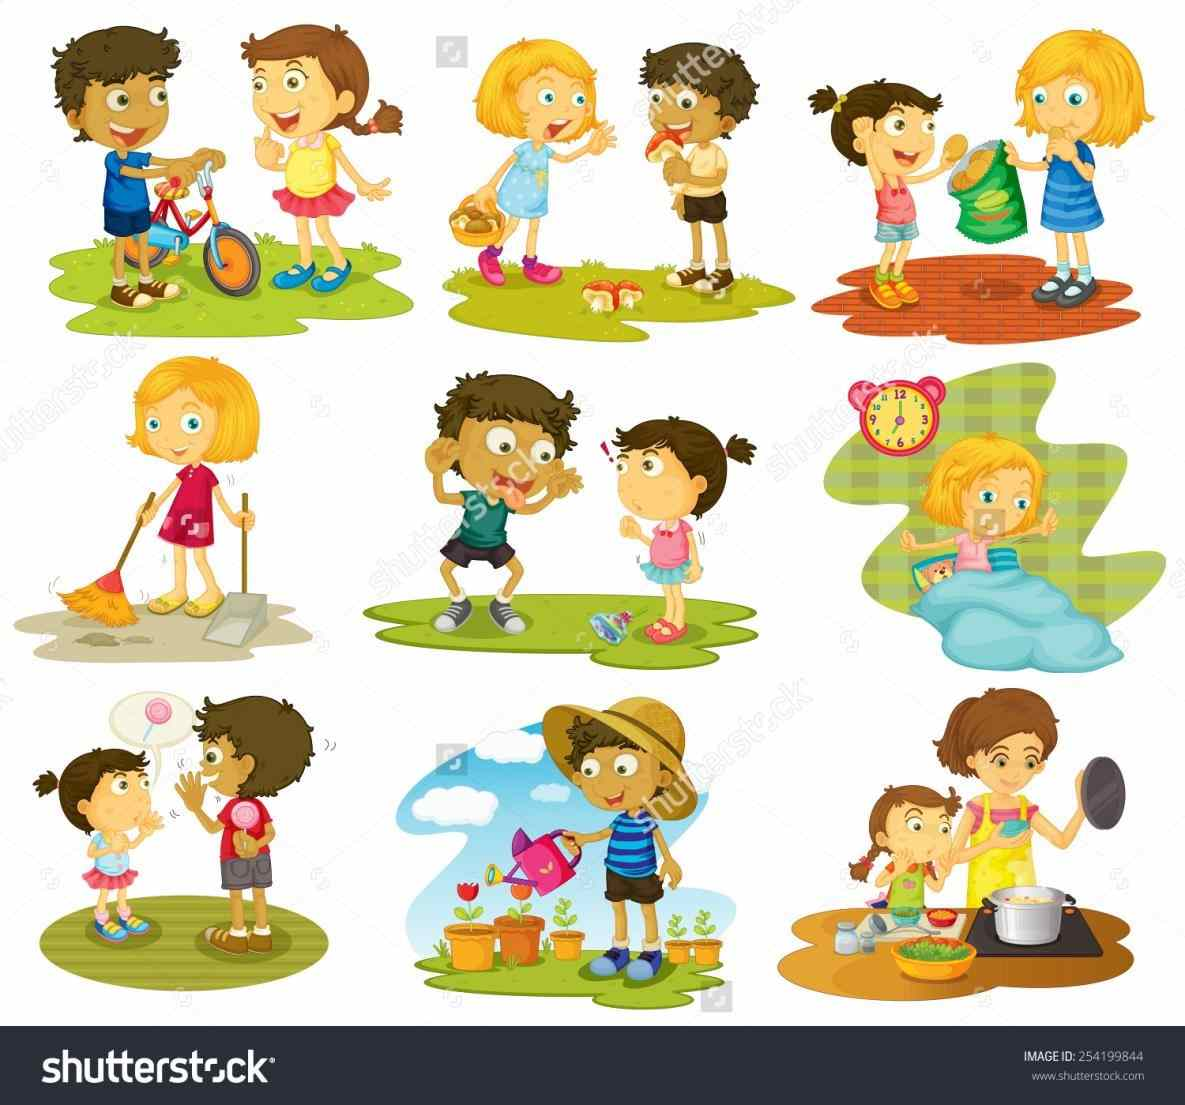 Activities clipart clip art. Family activity library meal